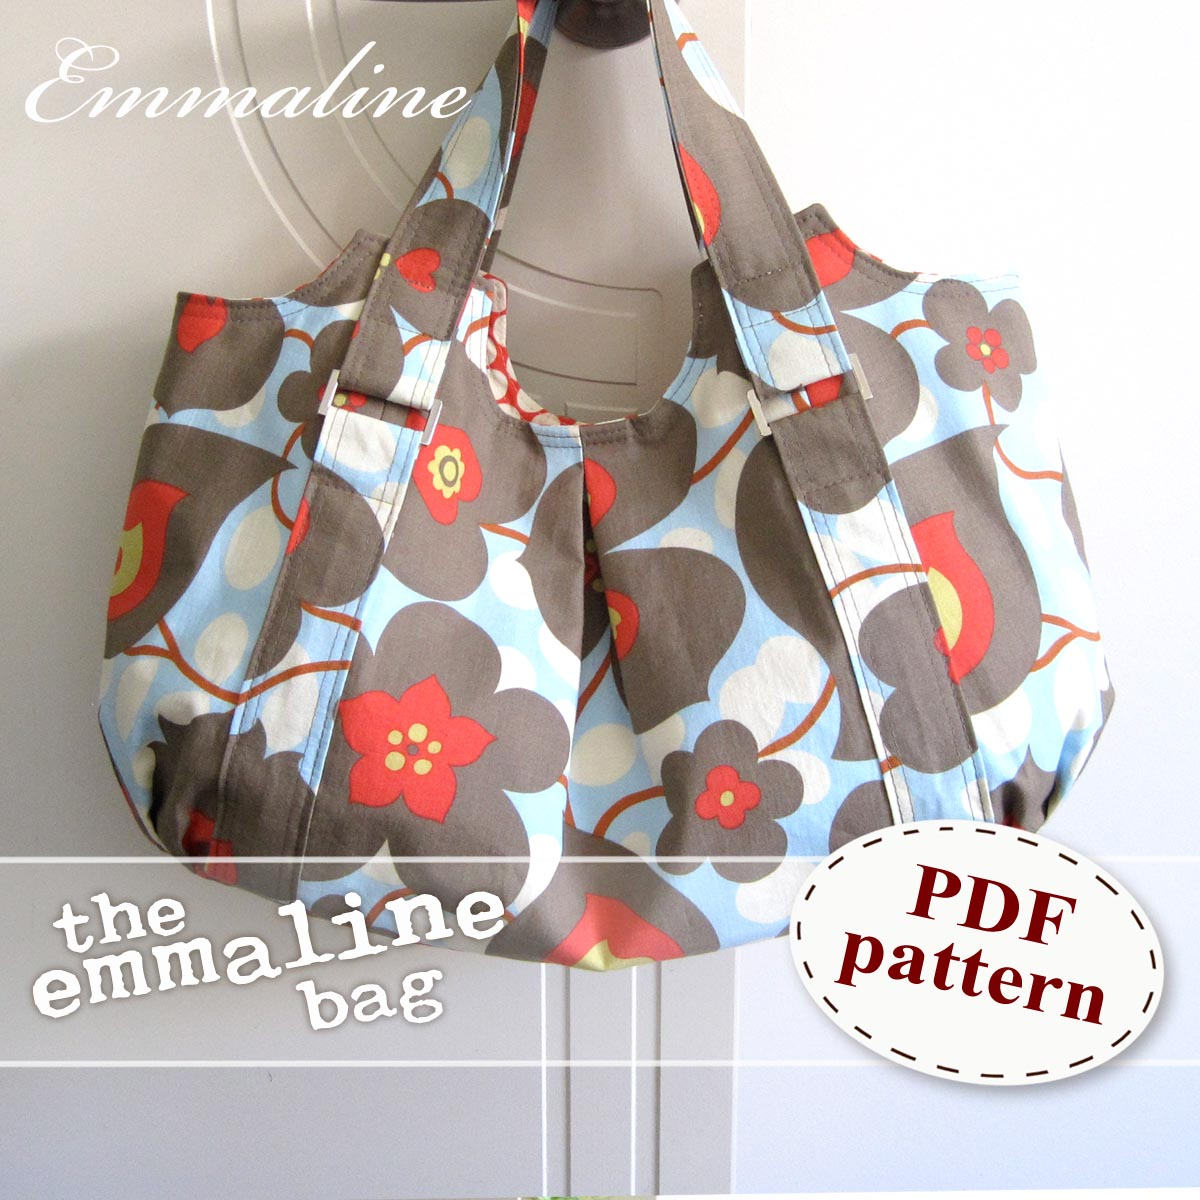 Patterns For Bags : Emmaline Bags: Sewing Patterns and Purse Supplies: The Emmaline Bag ...